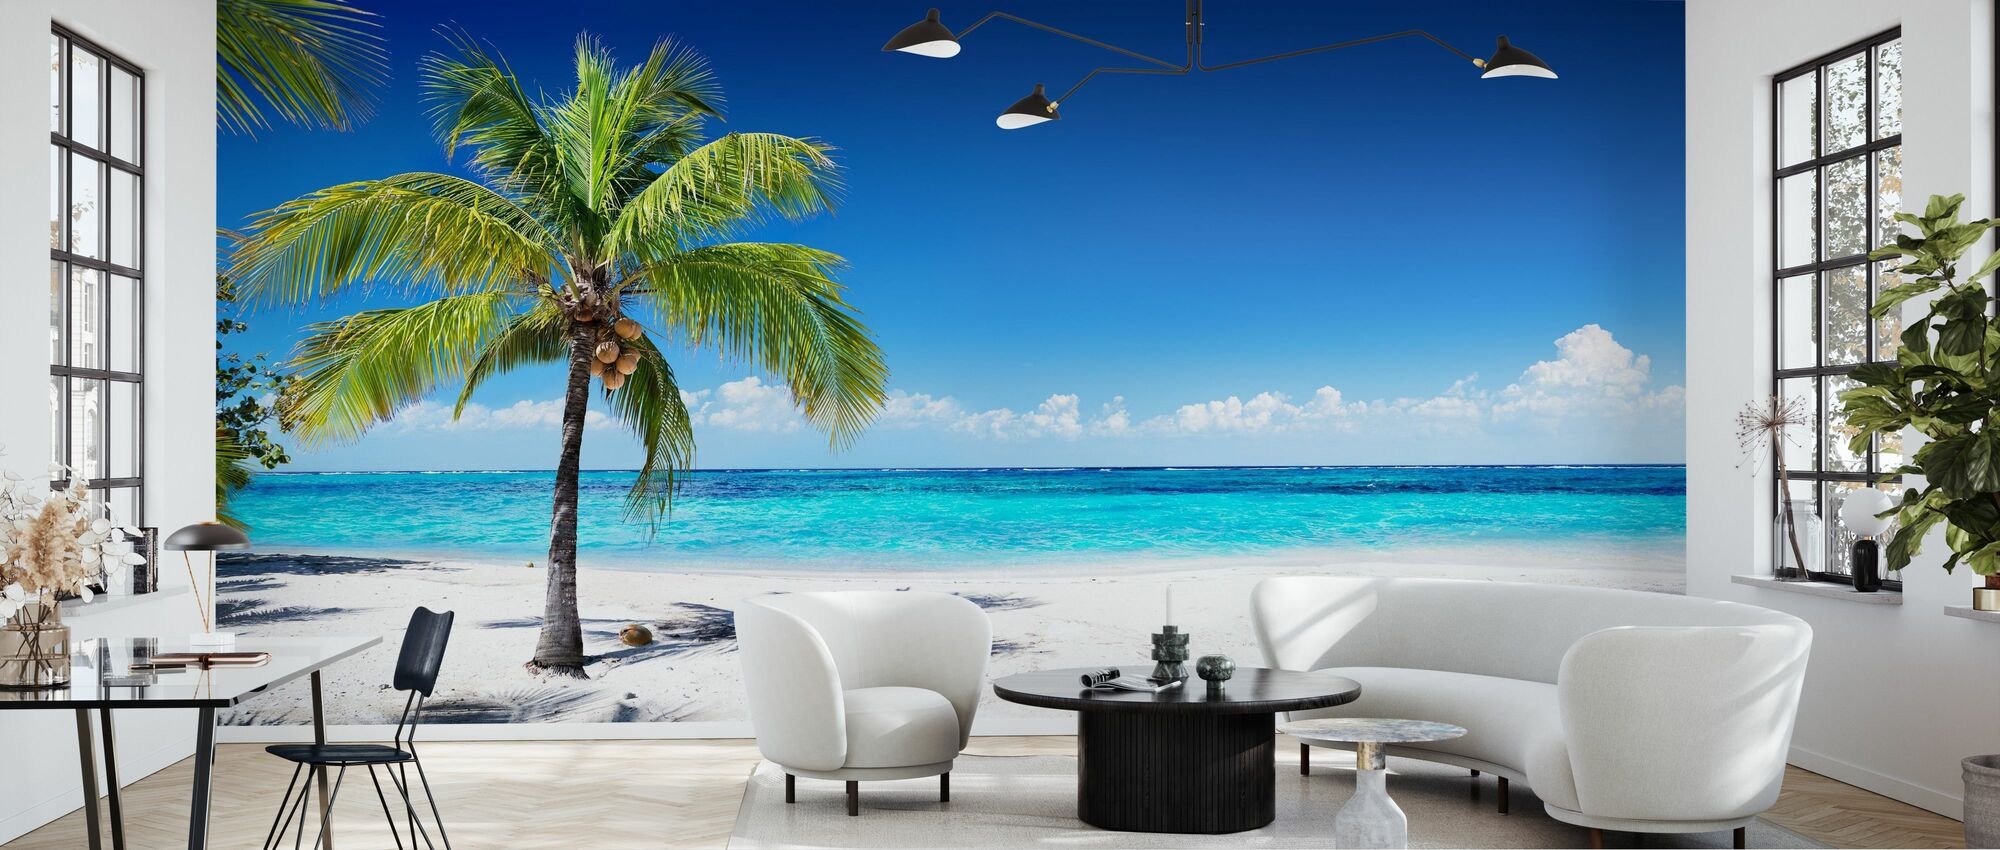 Coral Beach with Palm Tree - Wallpaper - Living Room